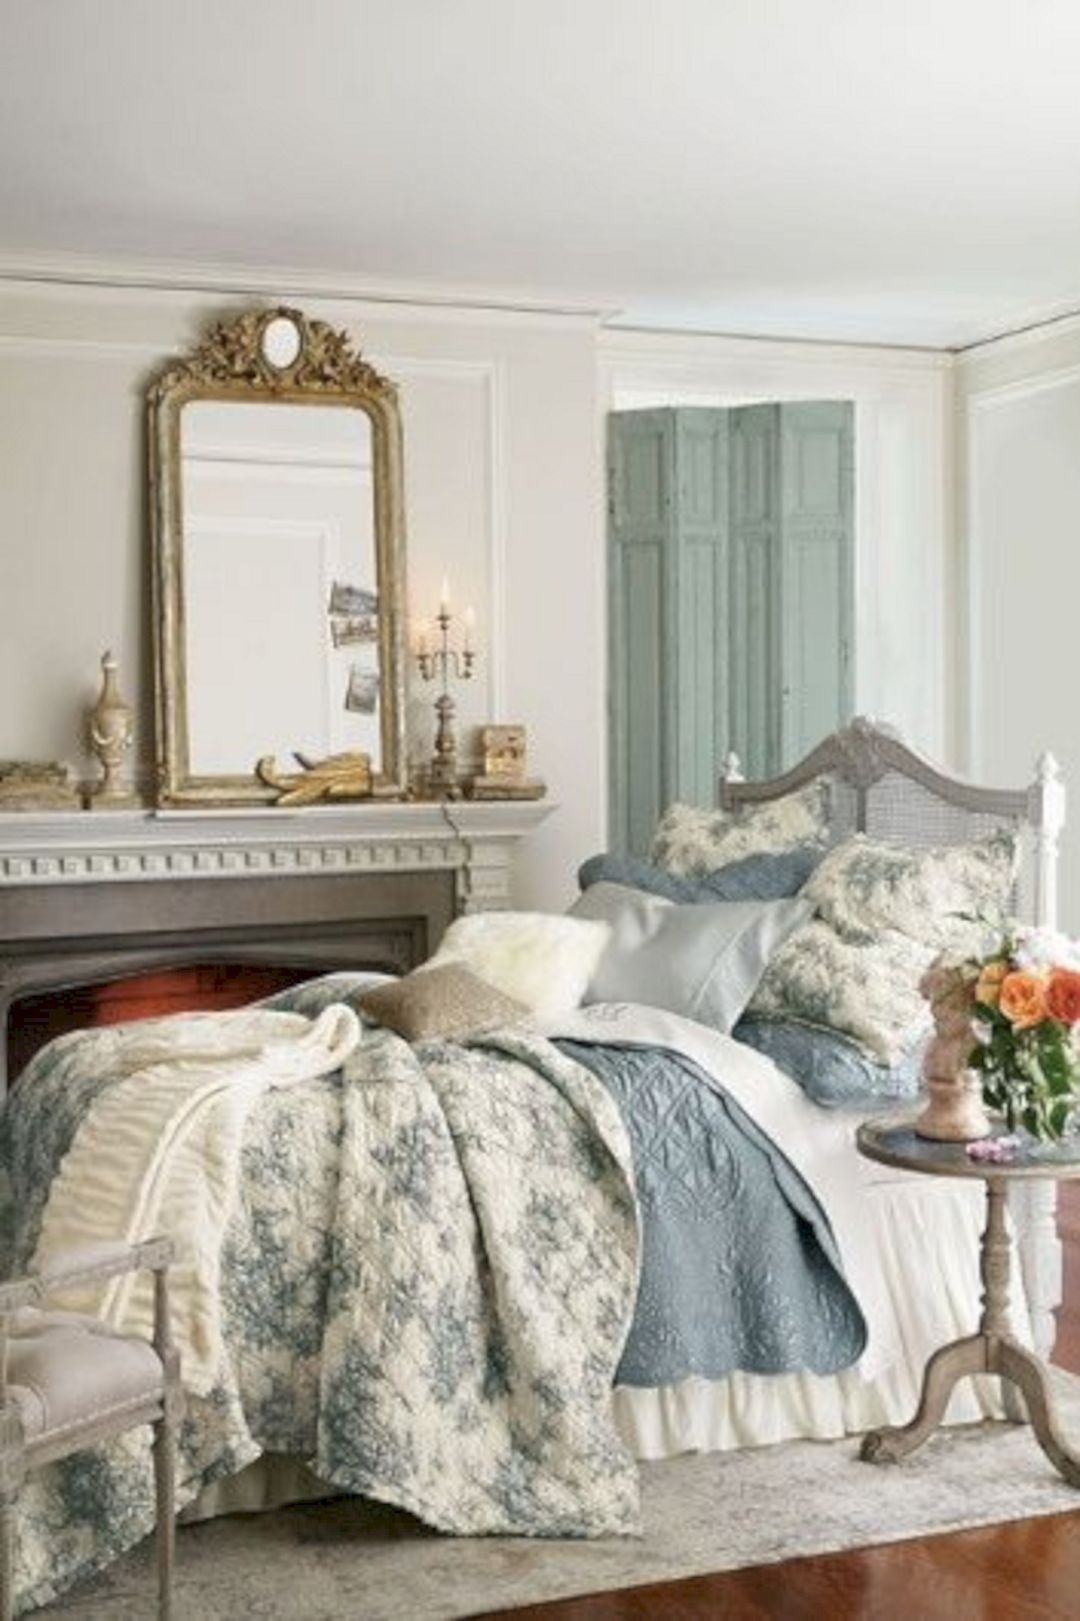 French Country Bedroom Design And Decor Ideas French Country Style Provides A Cal French Country Decorating Bedroom Country Bedroom Decor Country House Decor